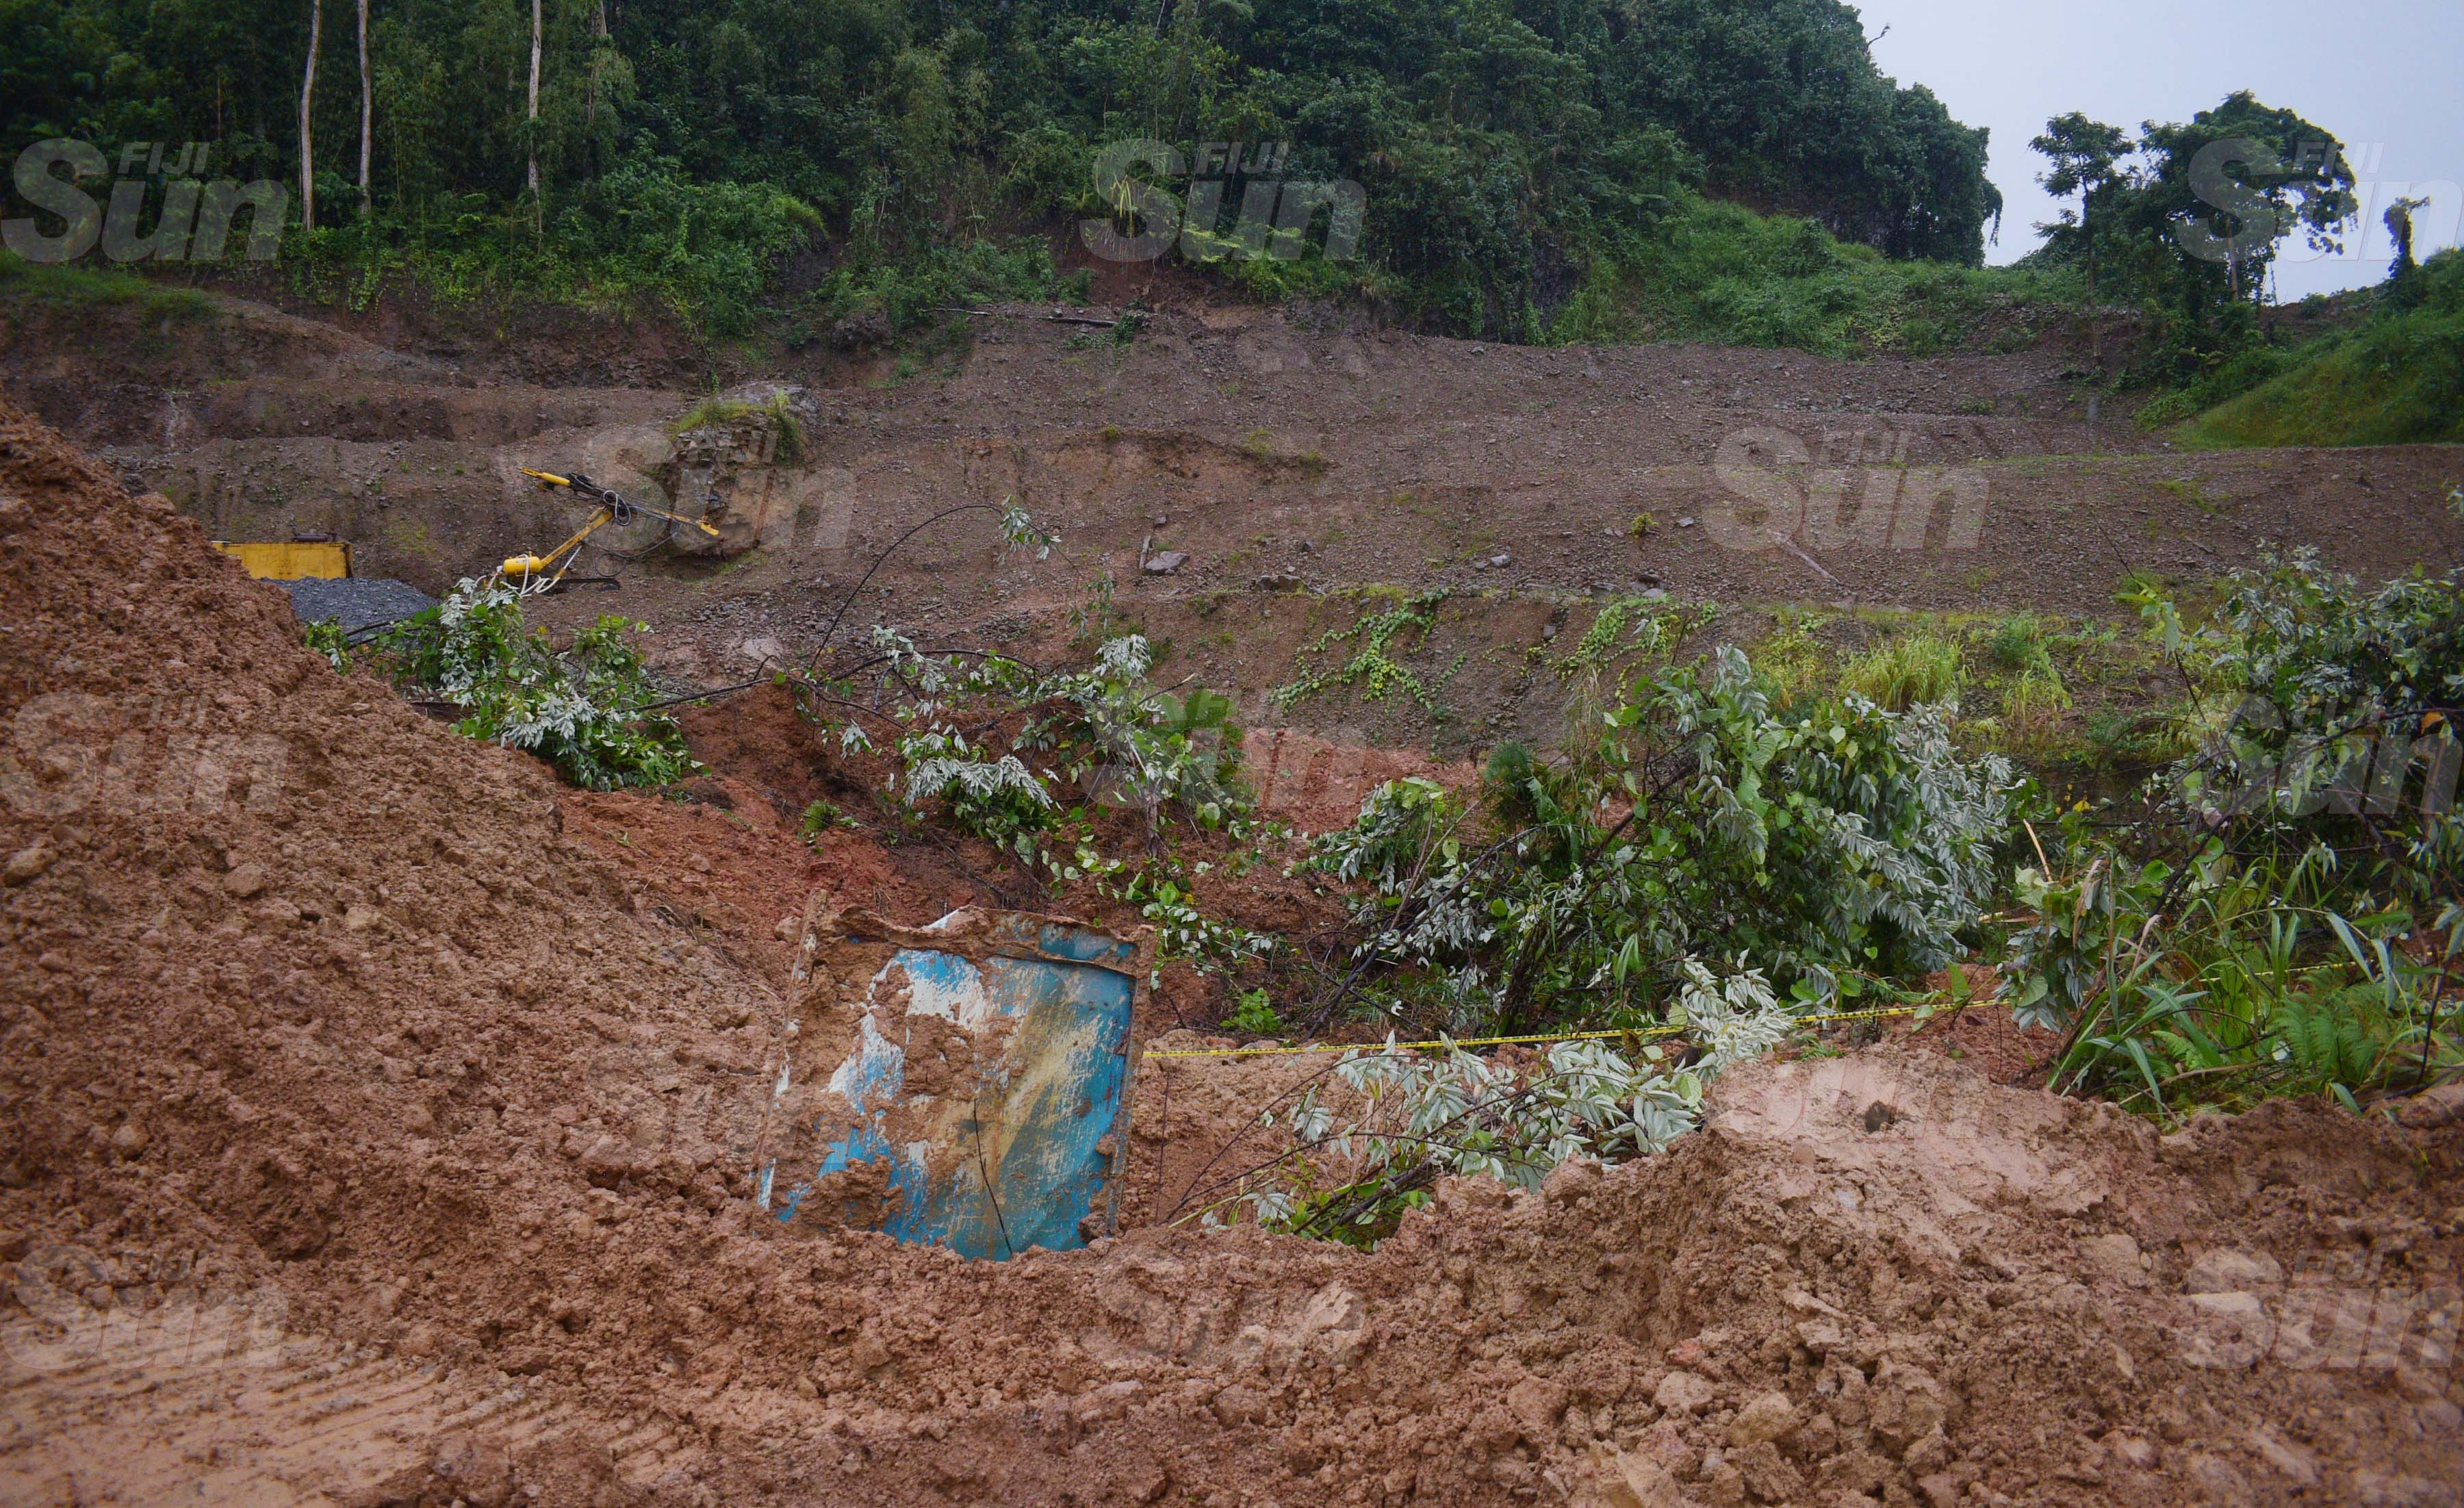 The body of the third person is believed to be buried within this area of landslide. The search will only recommence as the weather improves. Photo: Ronald Kumar.